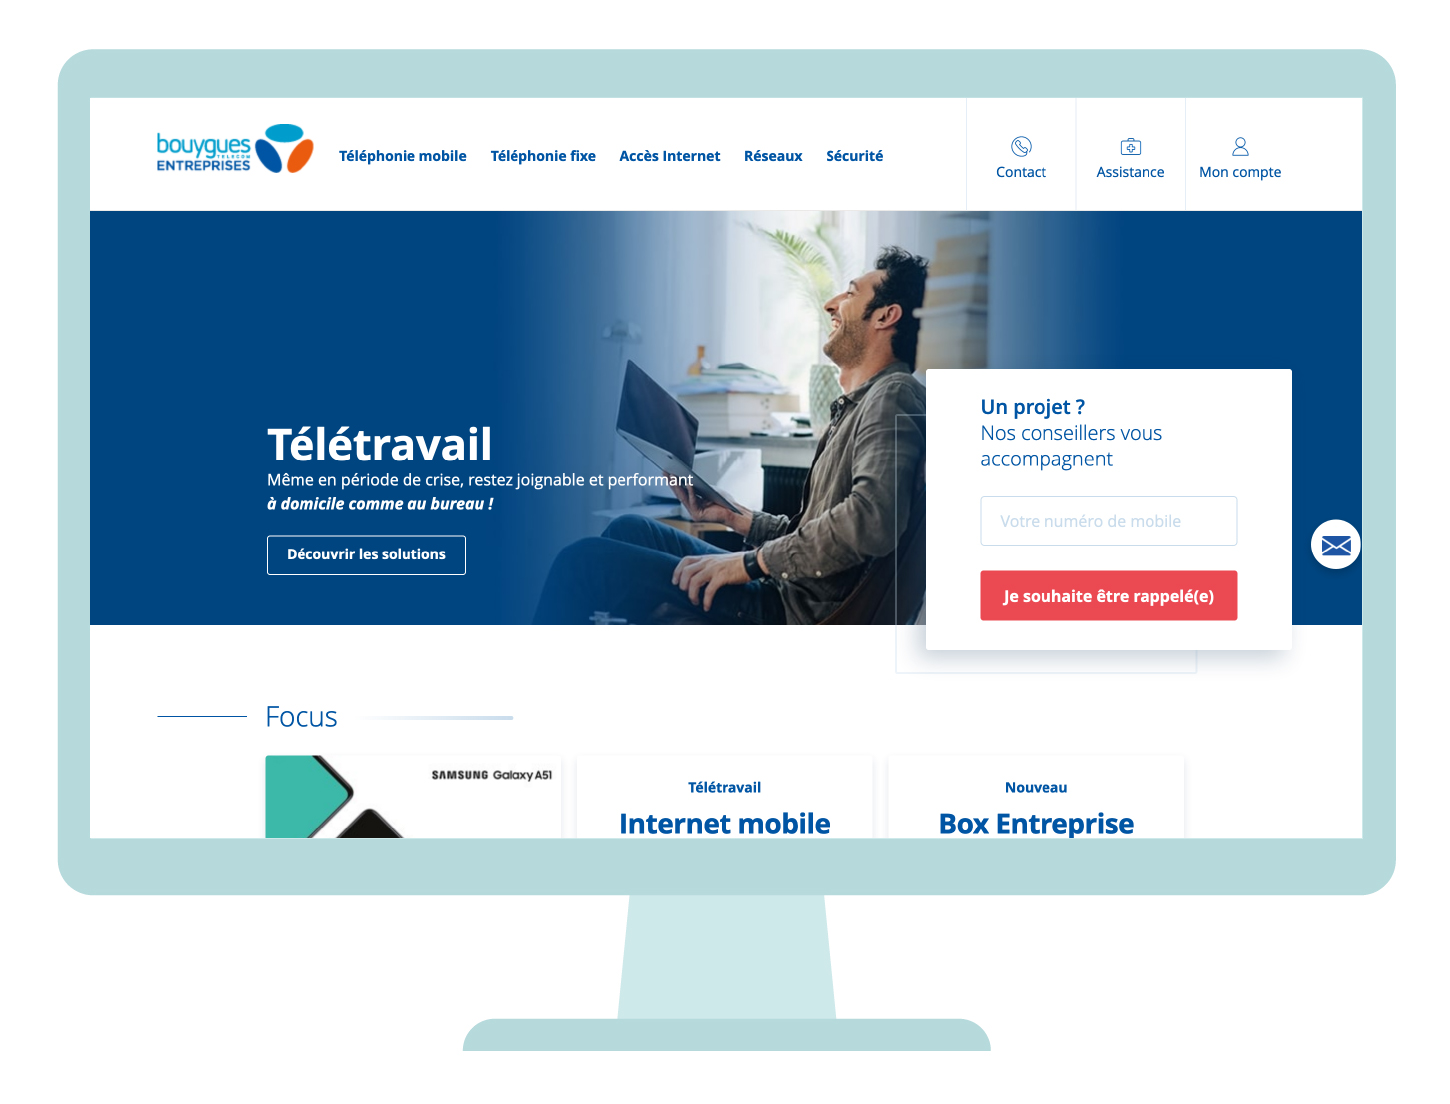 Customer case study : our answer to support Bouygues telecom in the redesign of its site and the co-construction of the new tree structure using card sorting and user testing